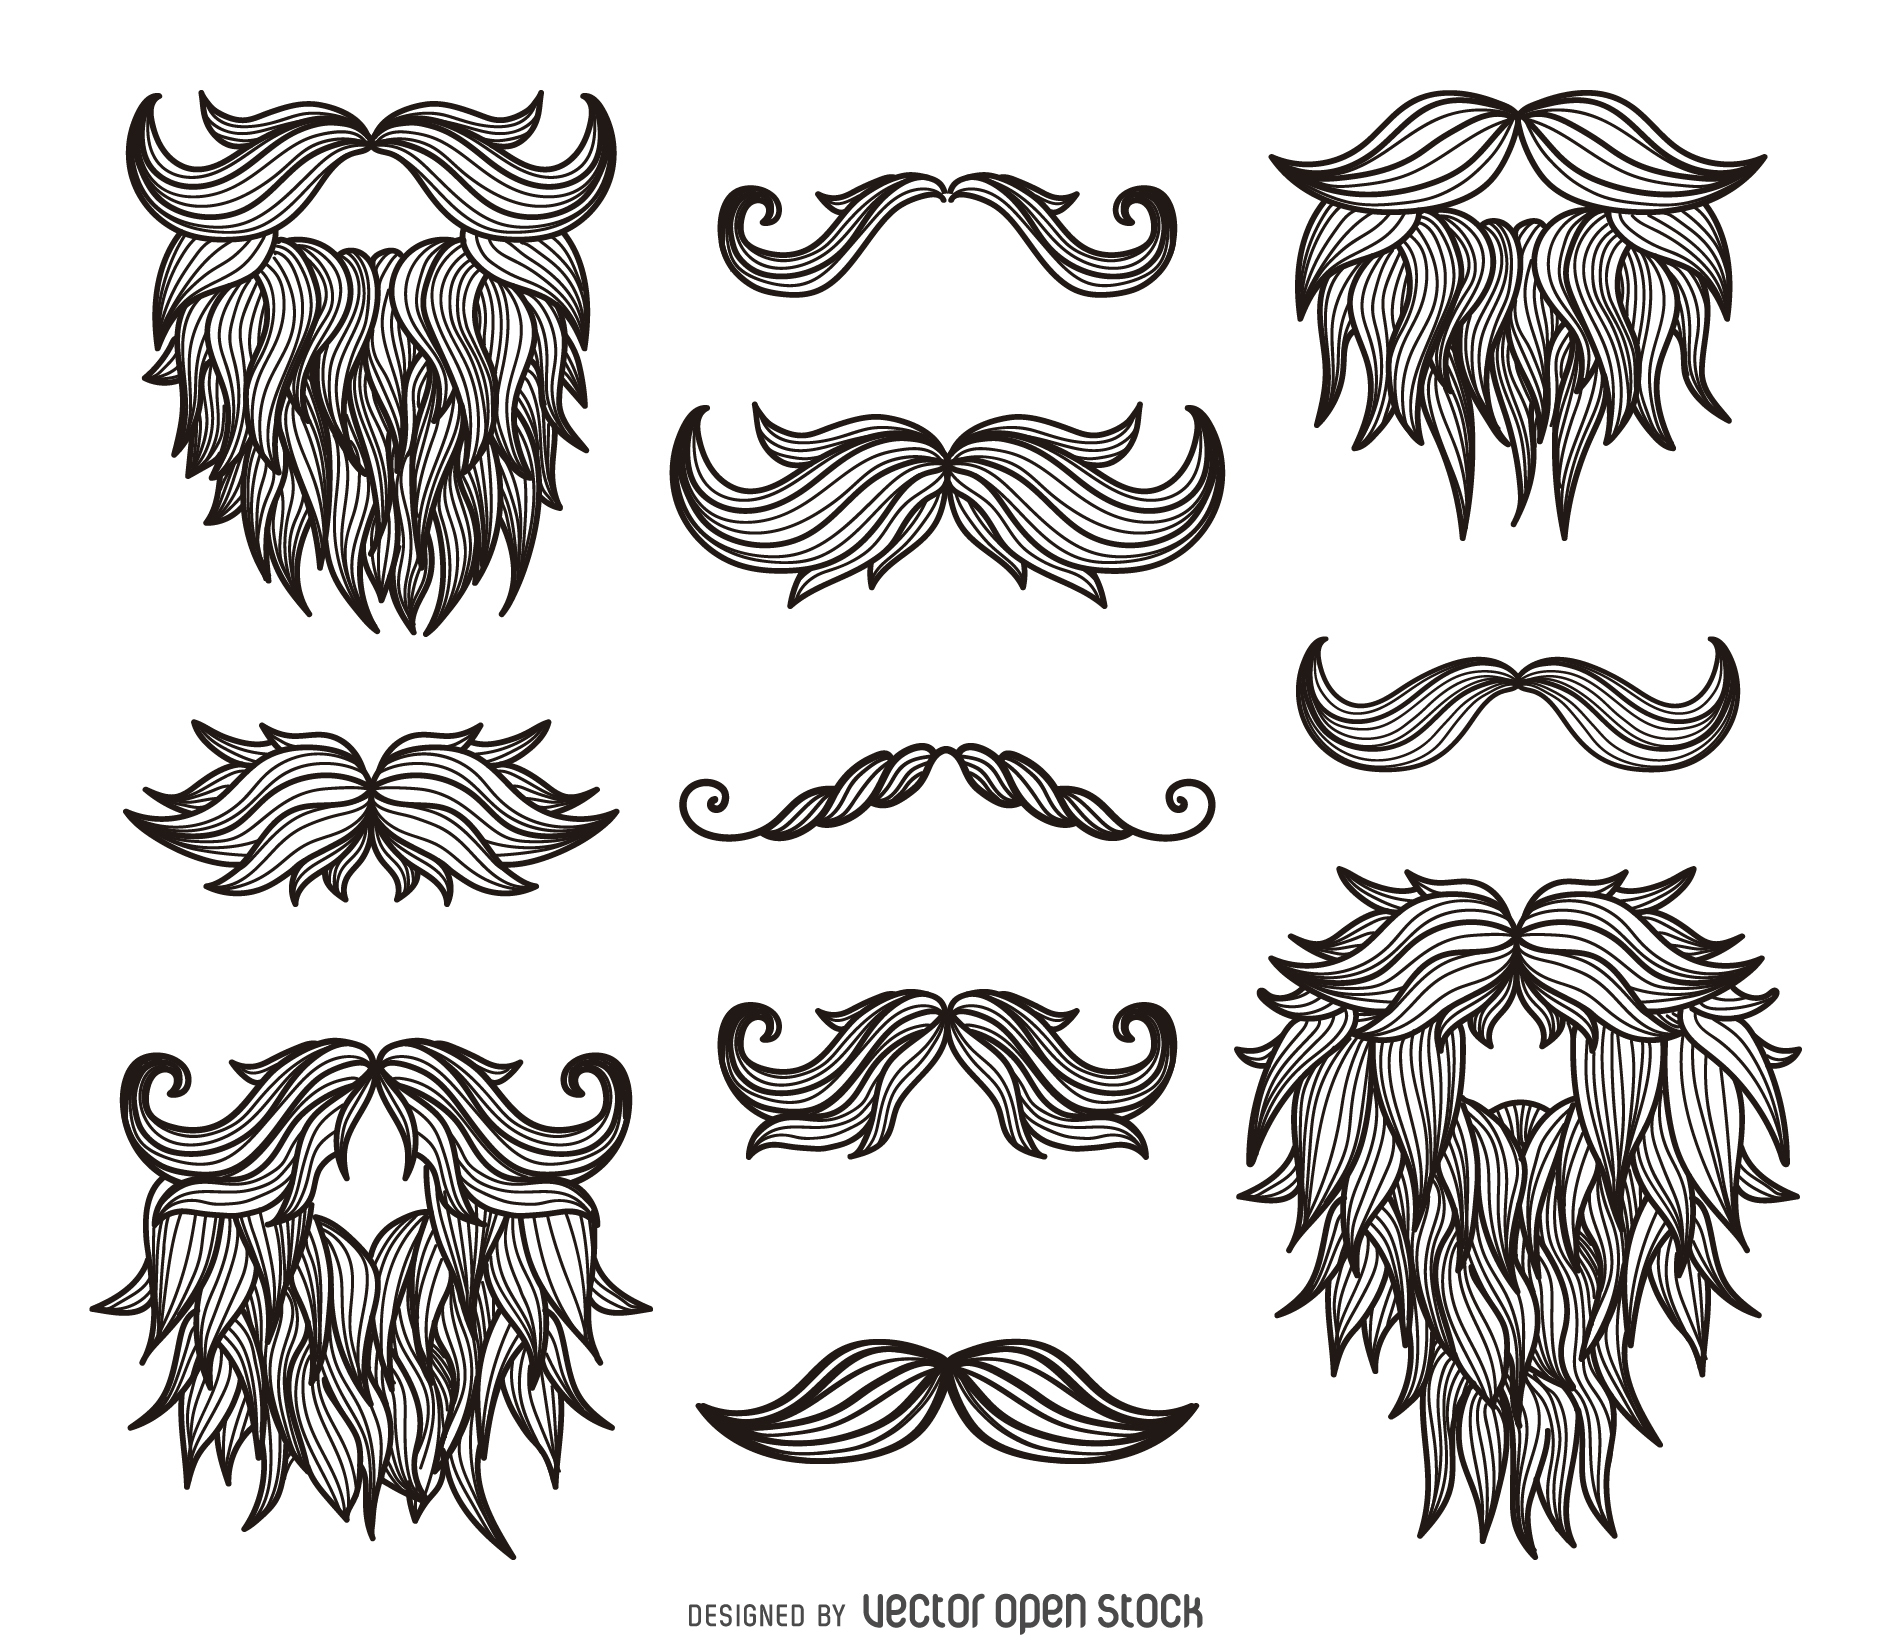 Drawn beard curly Hipster beards Hipster drawn moustaches